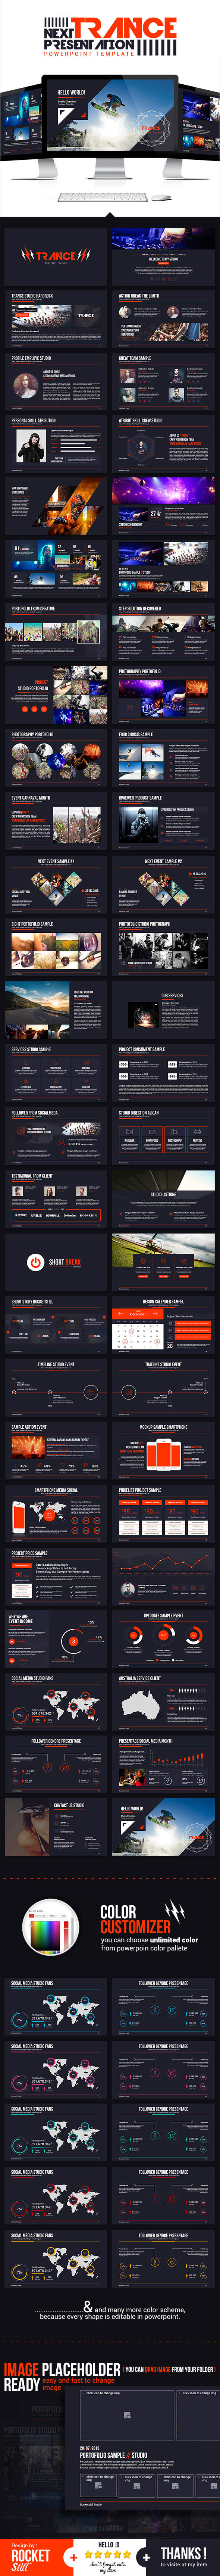 Trance Powerpoint Template - Creative PowerPoint Templates